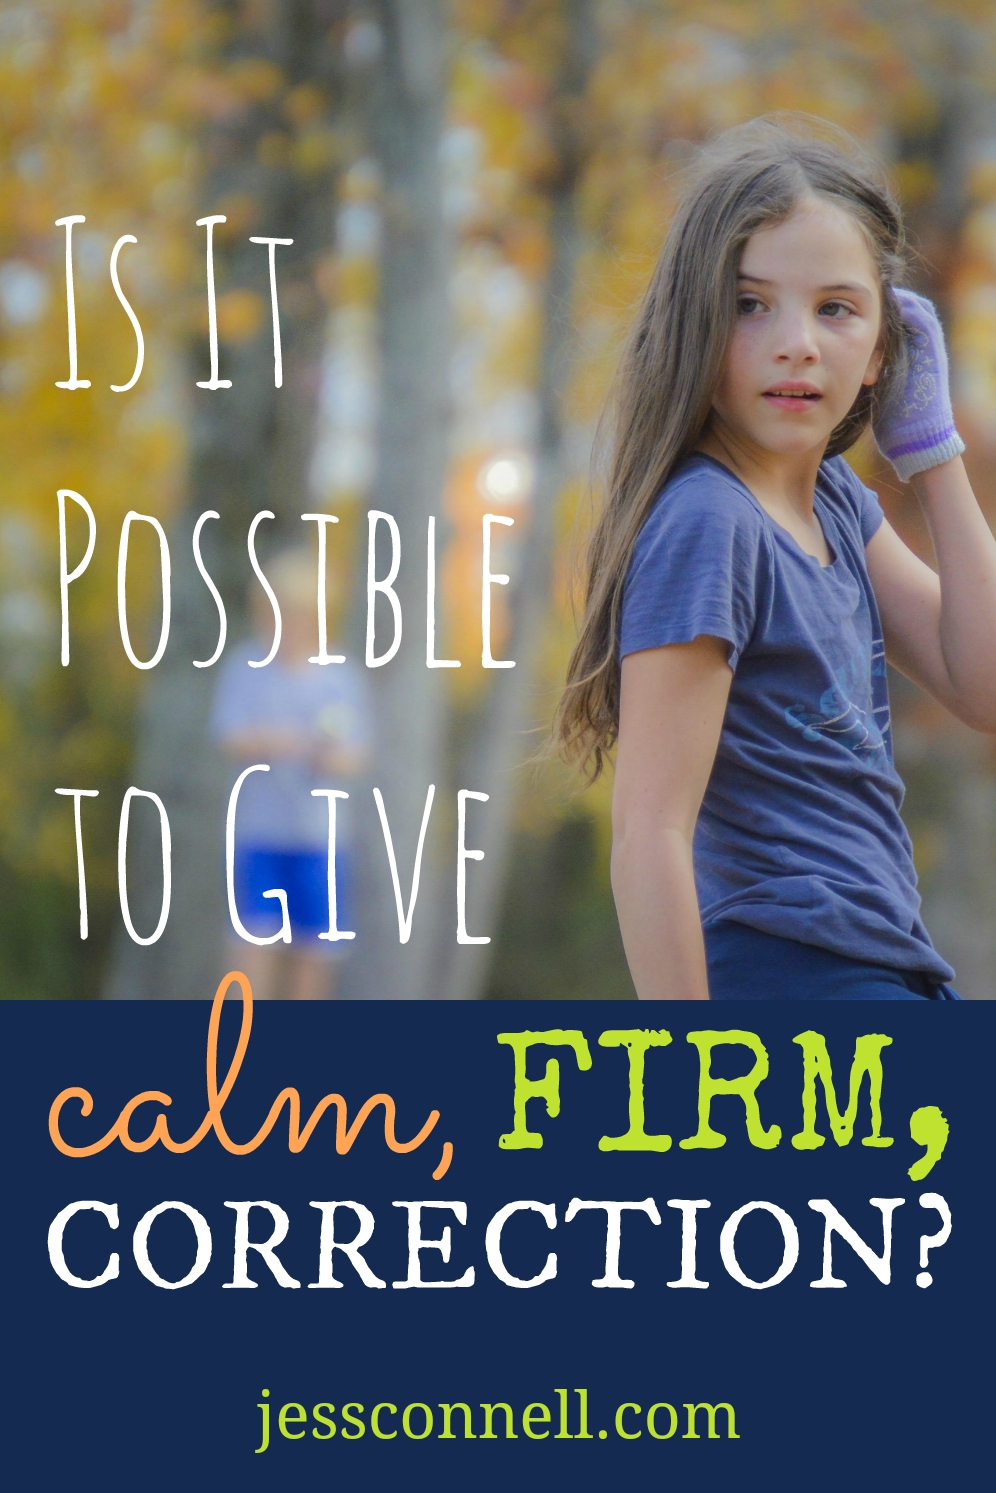 Is It Possible to Give Calm, Firm Correction? // jessconnell.com